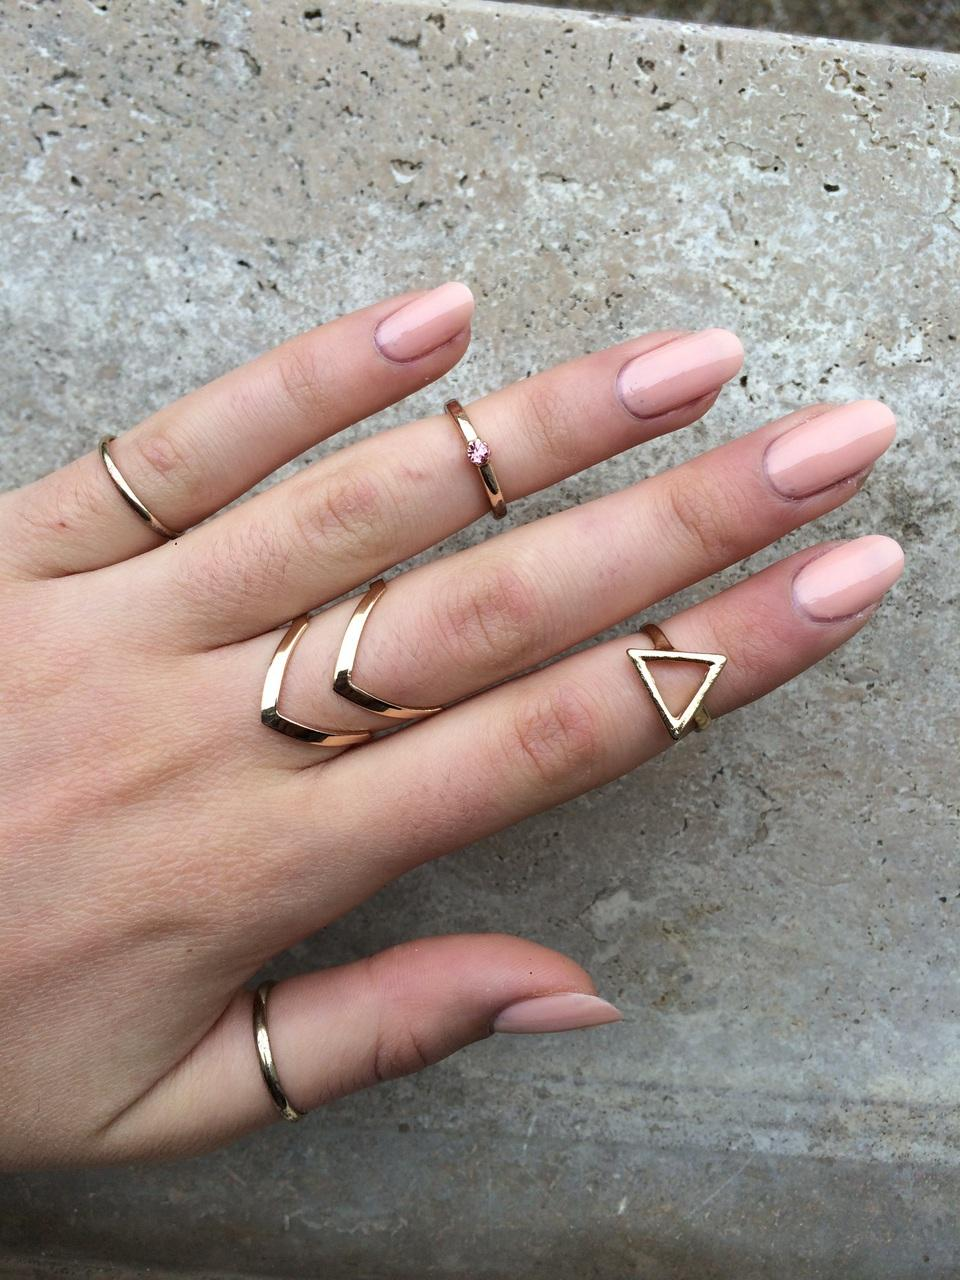 anelli, arrows, beautiful, gold, grey, hand, mano, nail art, nails, oro, pink, rings, rosa, triangle, unghie, cipria